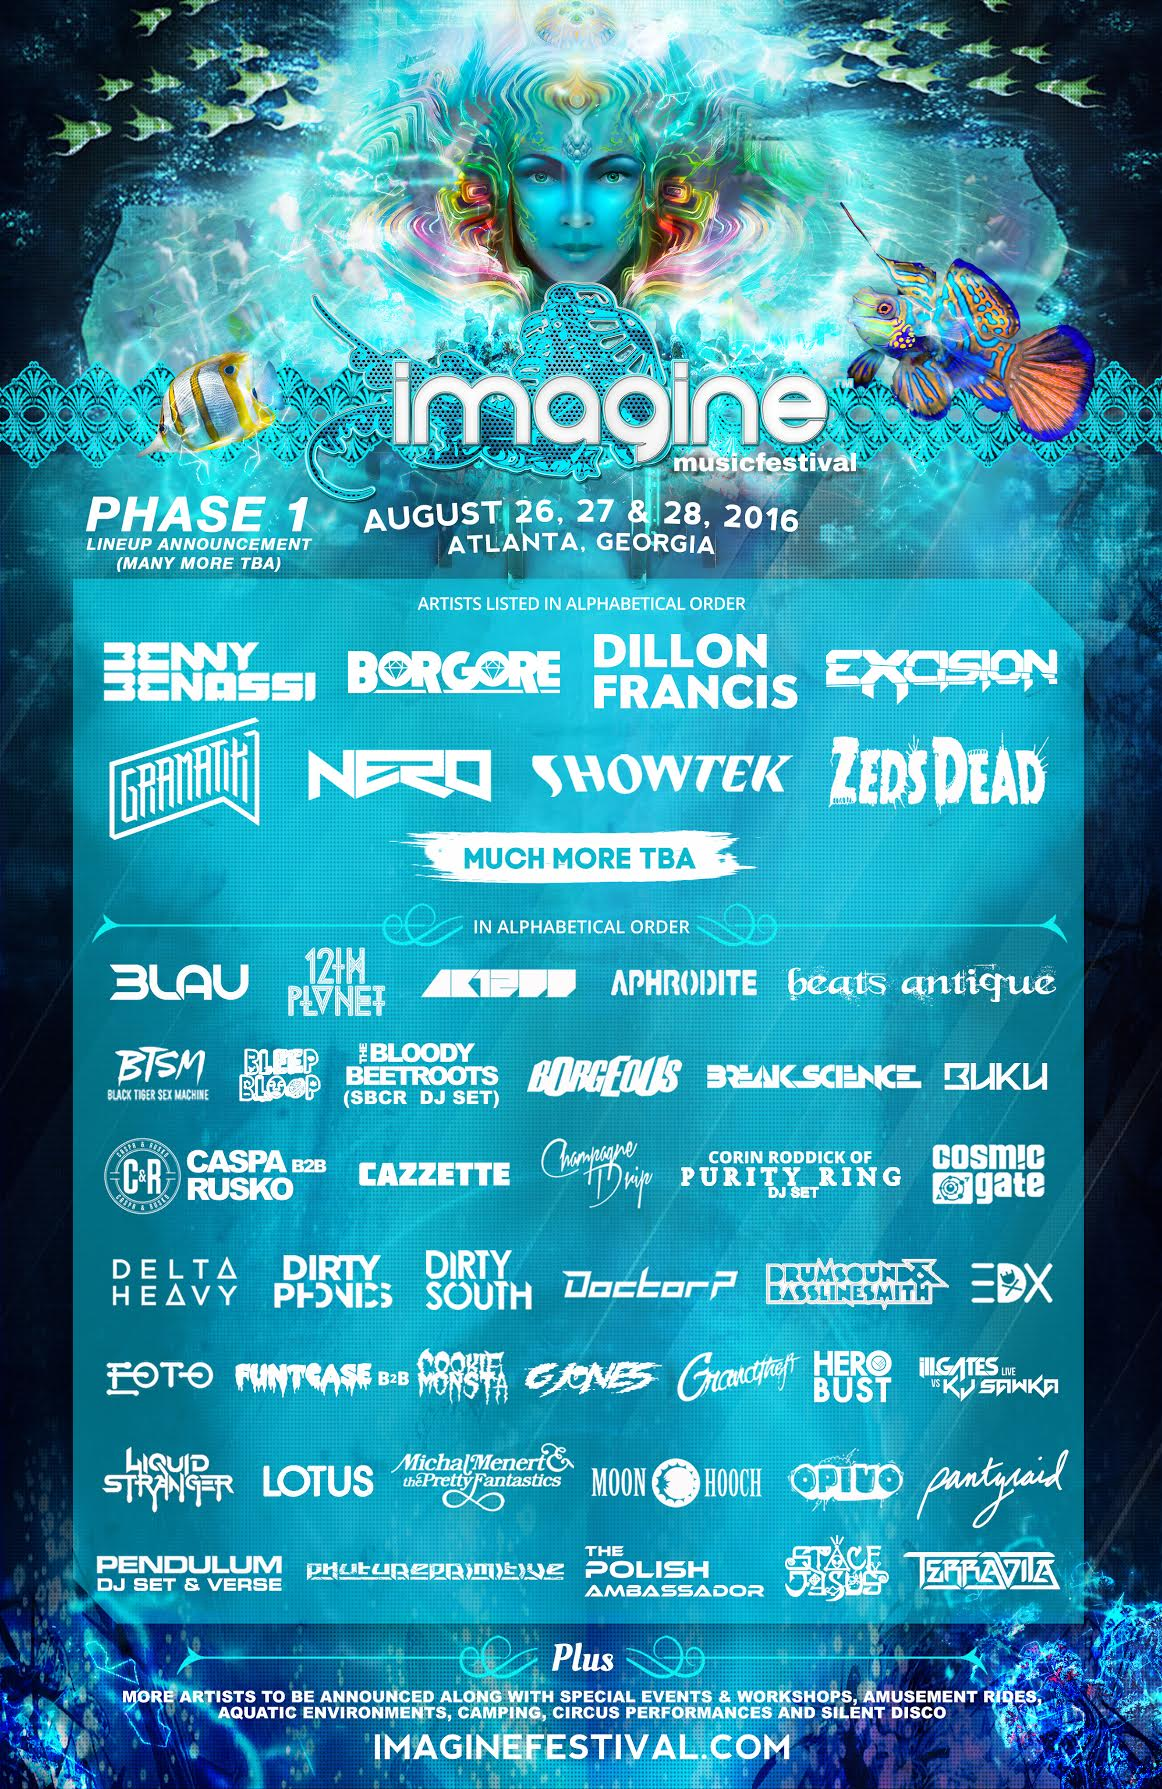 Imagine Music Festival Claims The South With The Release of its 2016 Lineup